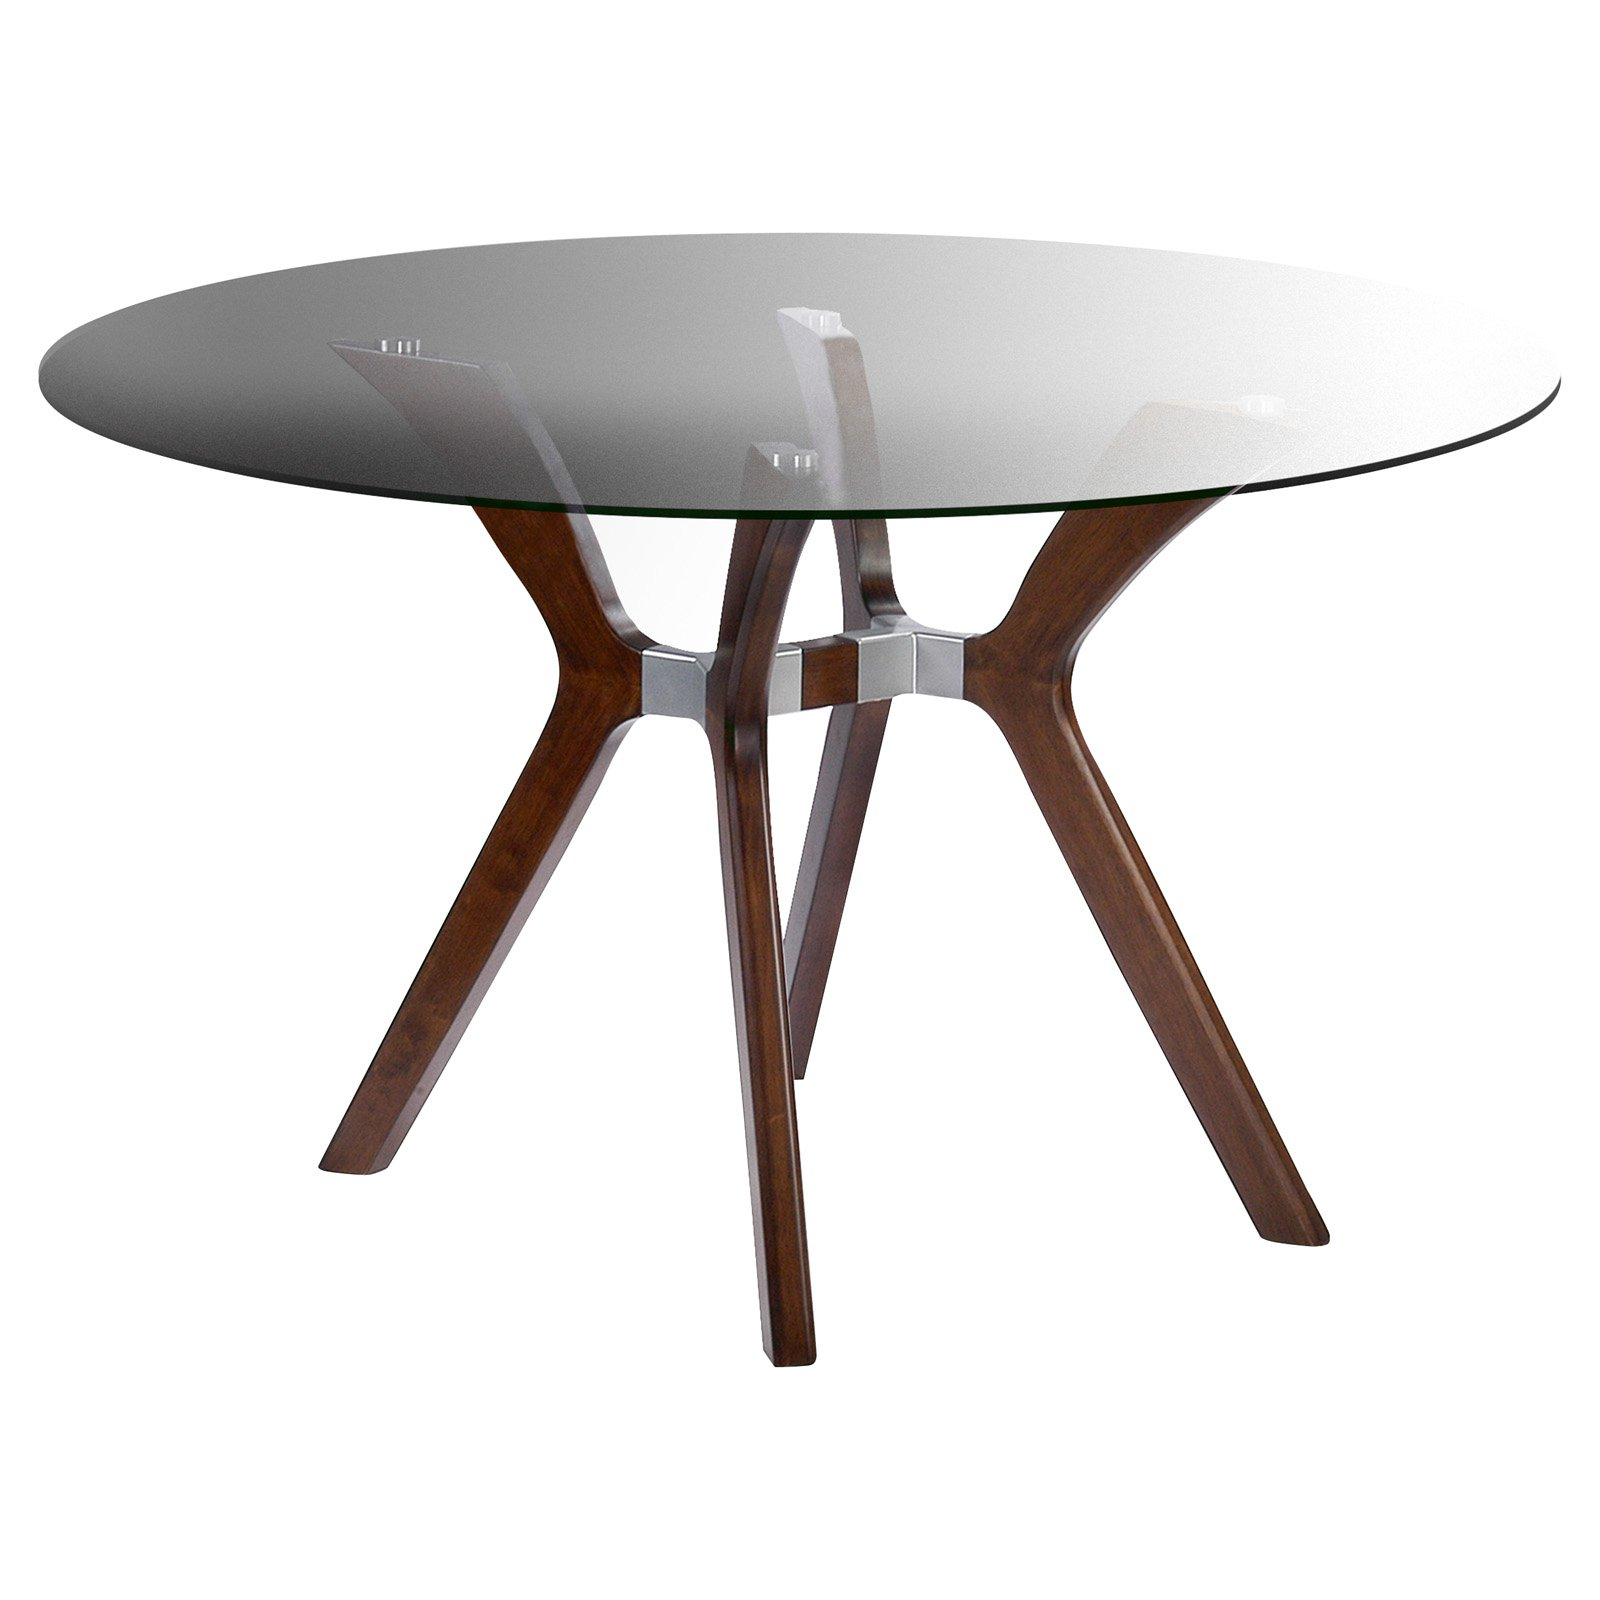 Chintaly Luisa Round Dining Table with Glass Top